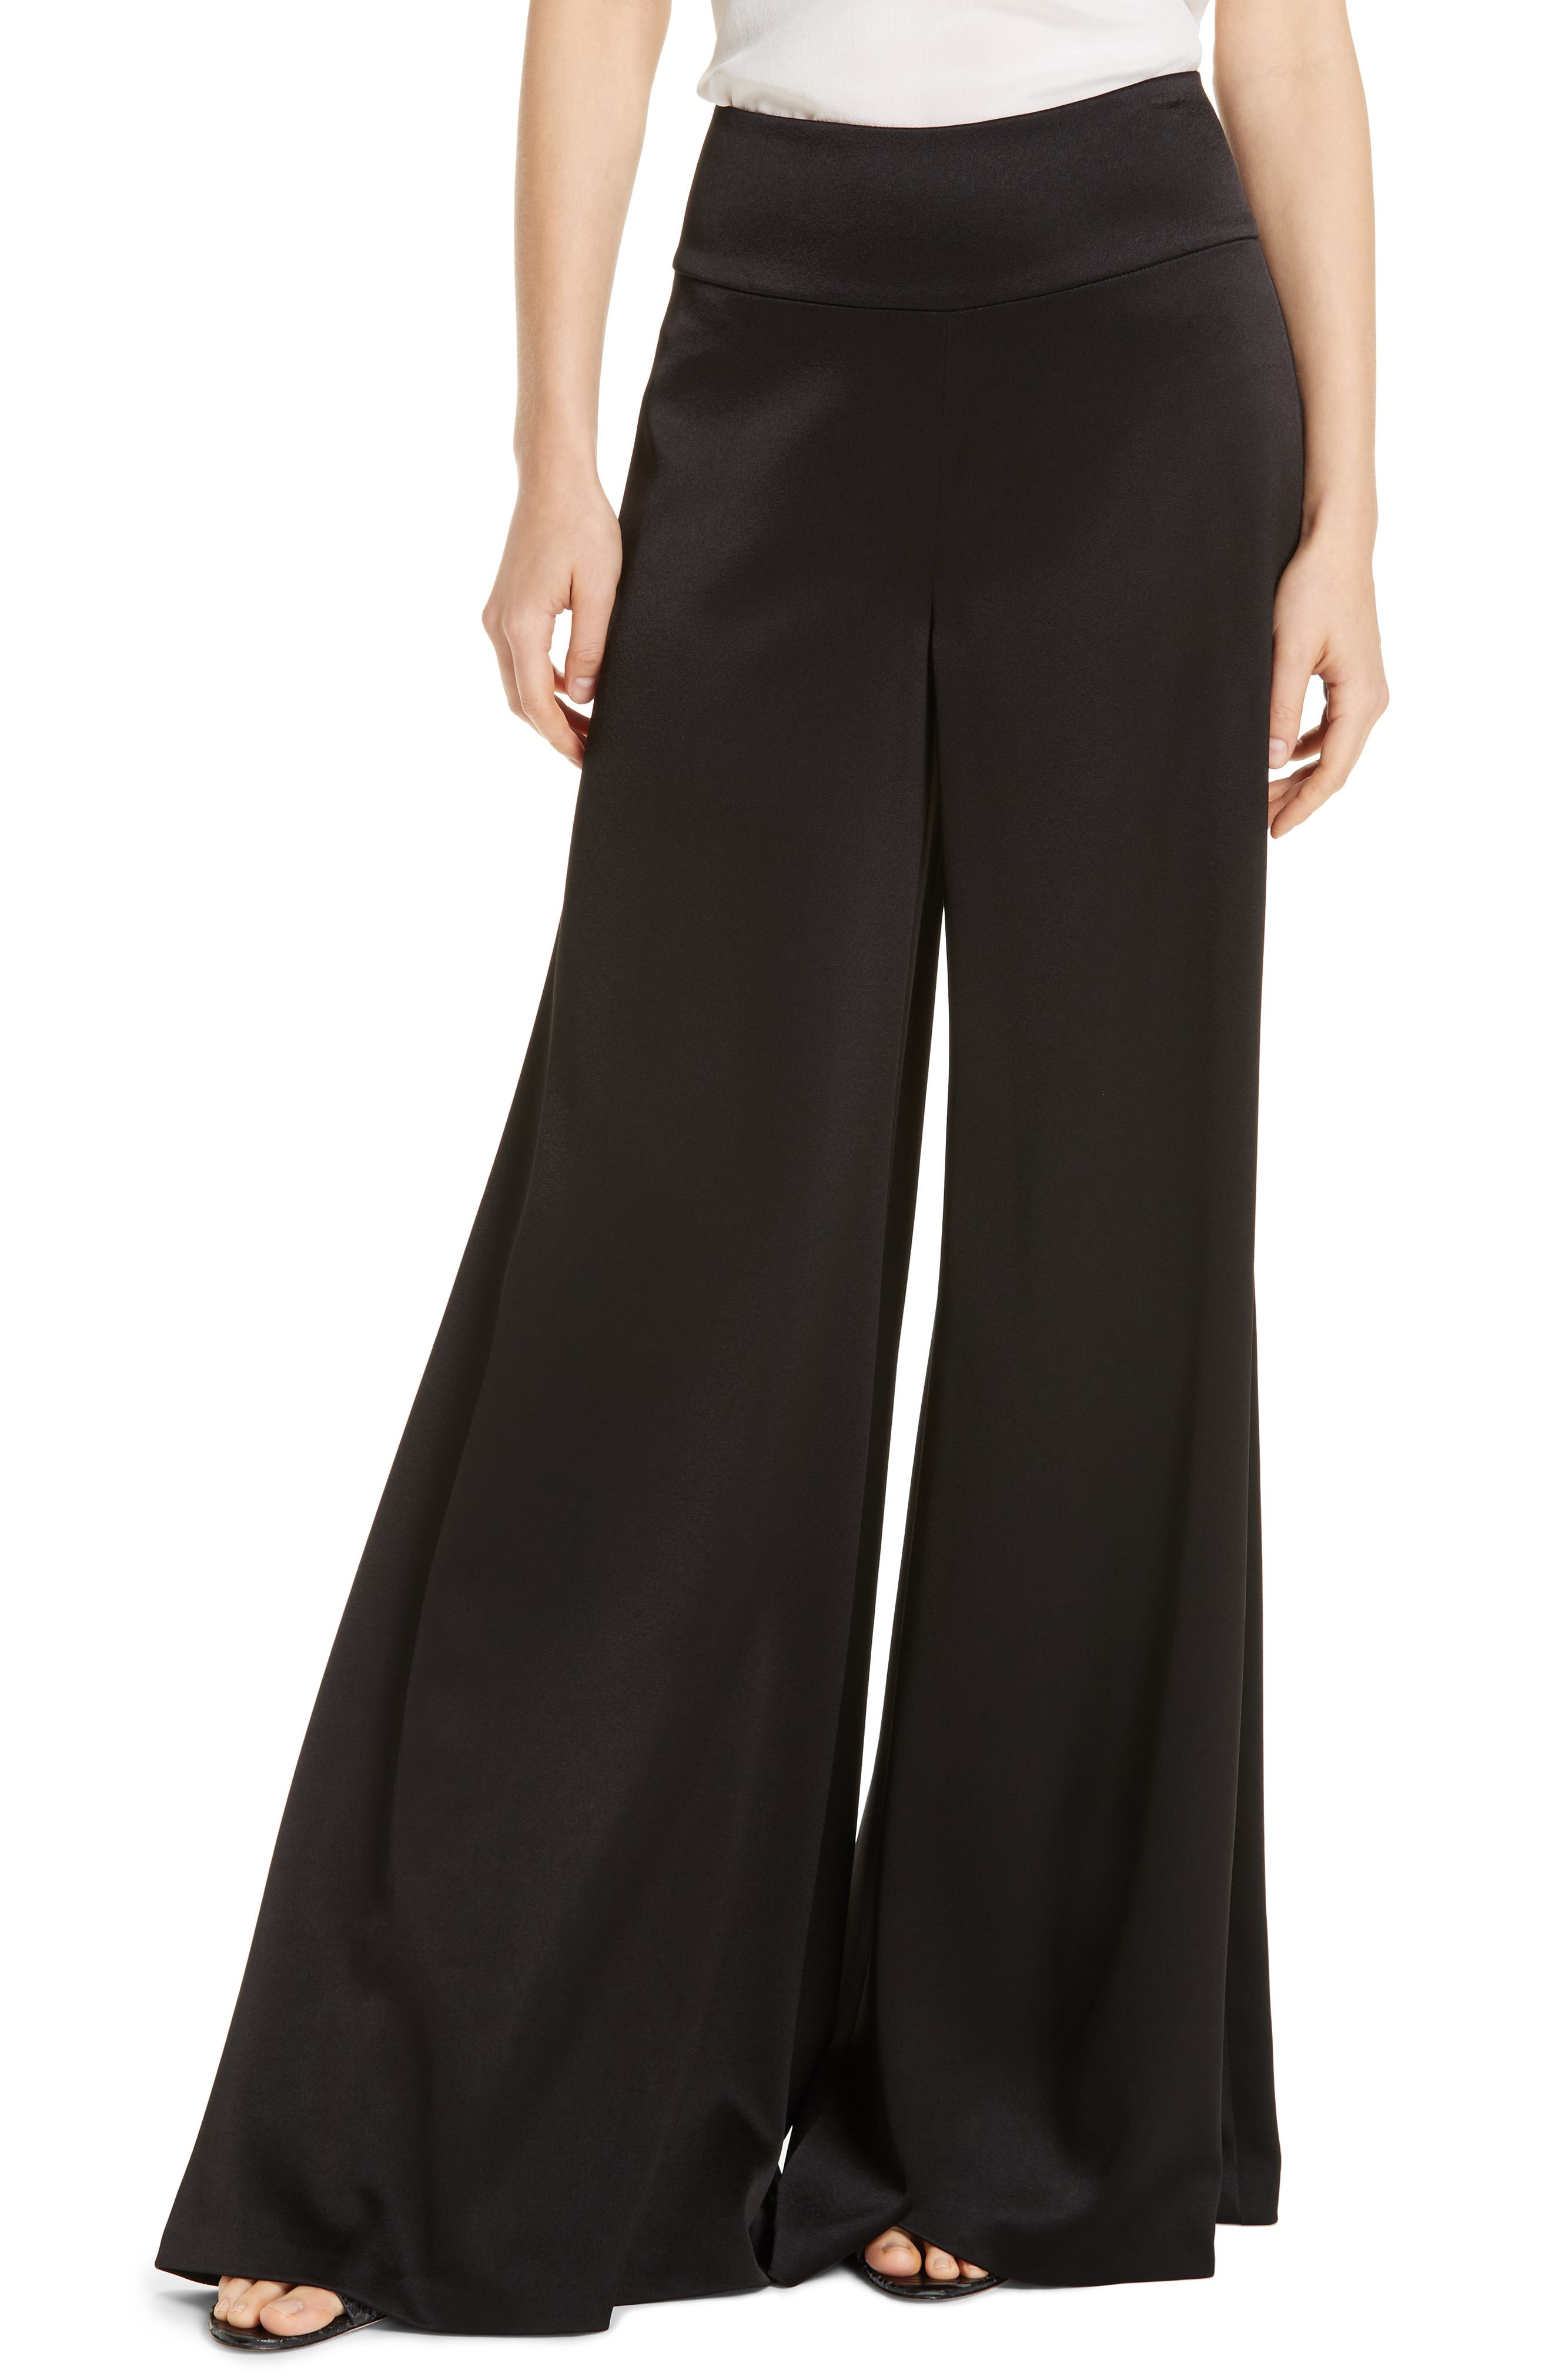 Alice + Olivia Iyanna High Waist Fit & Flare Pants, Black